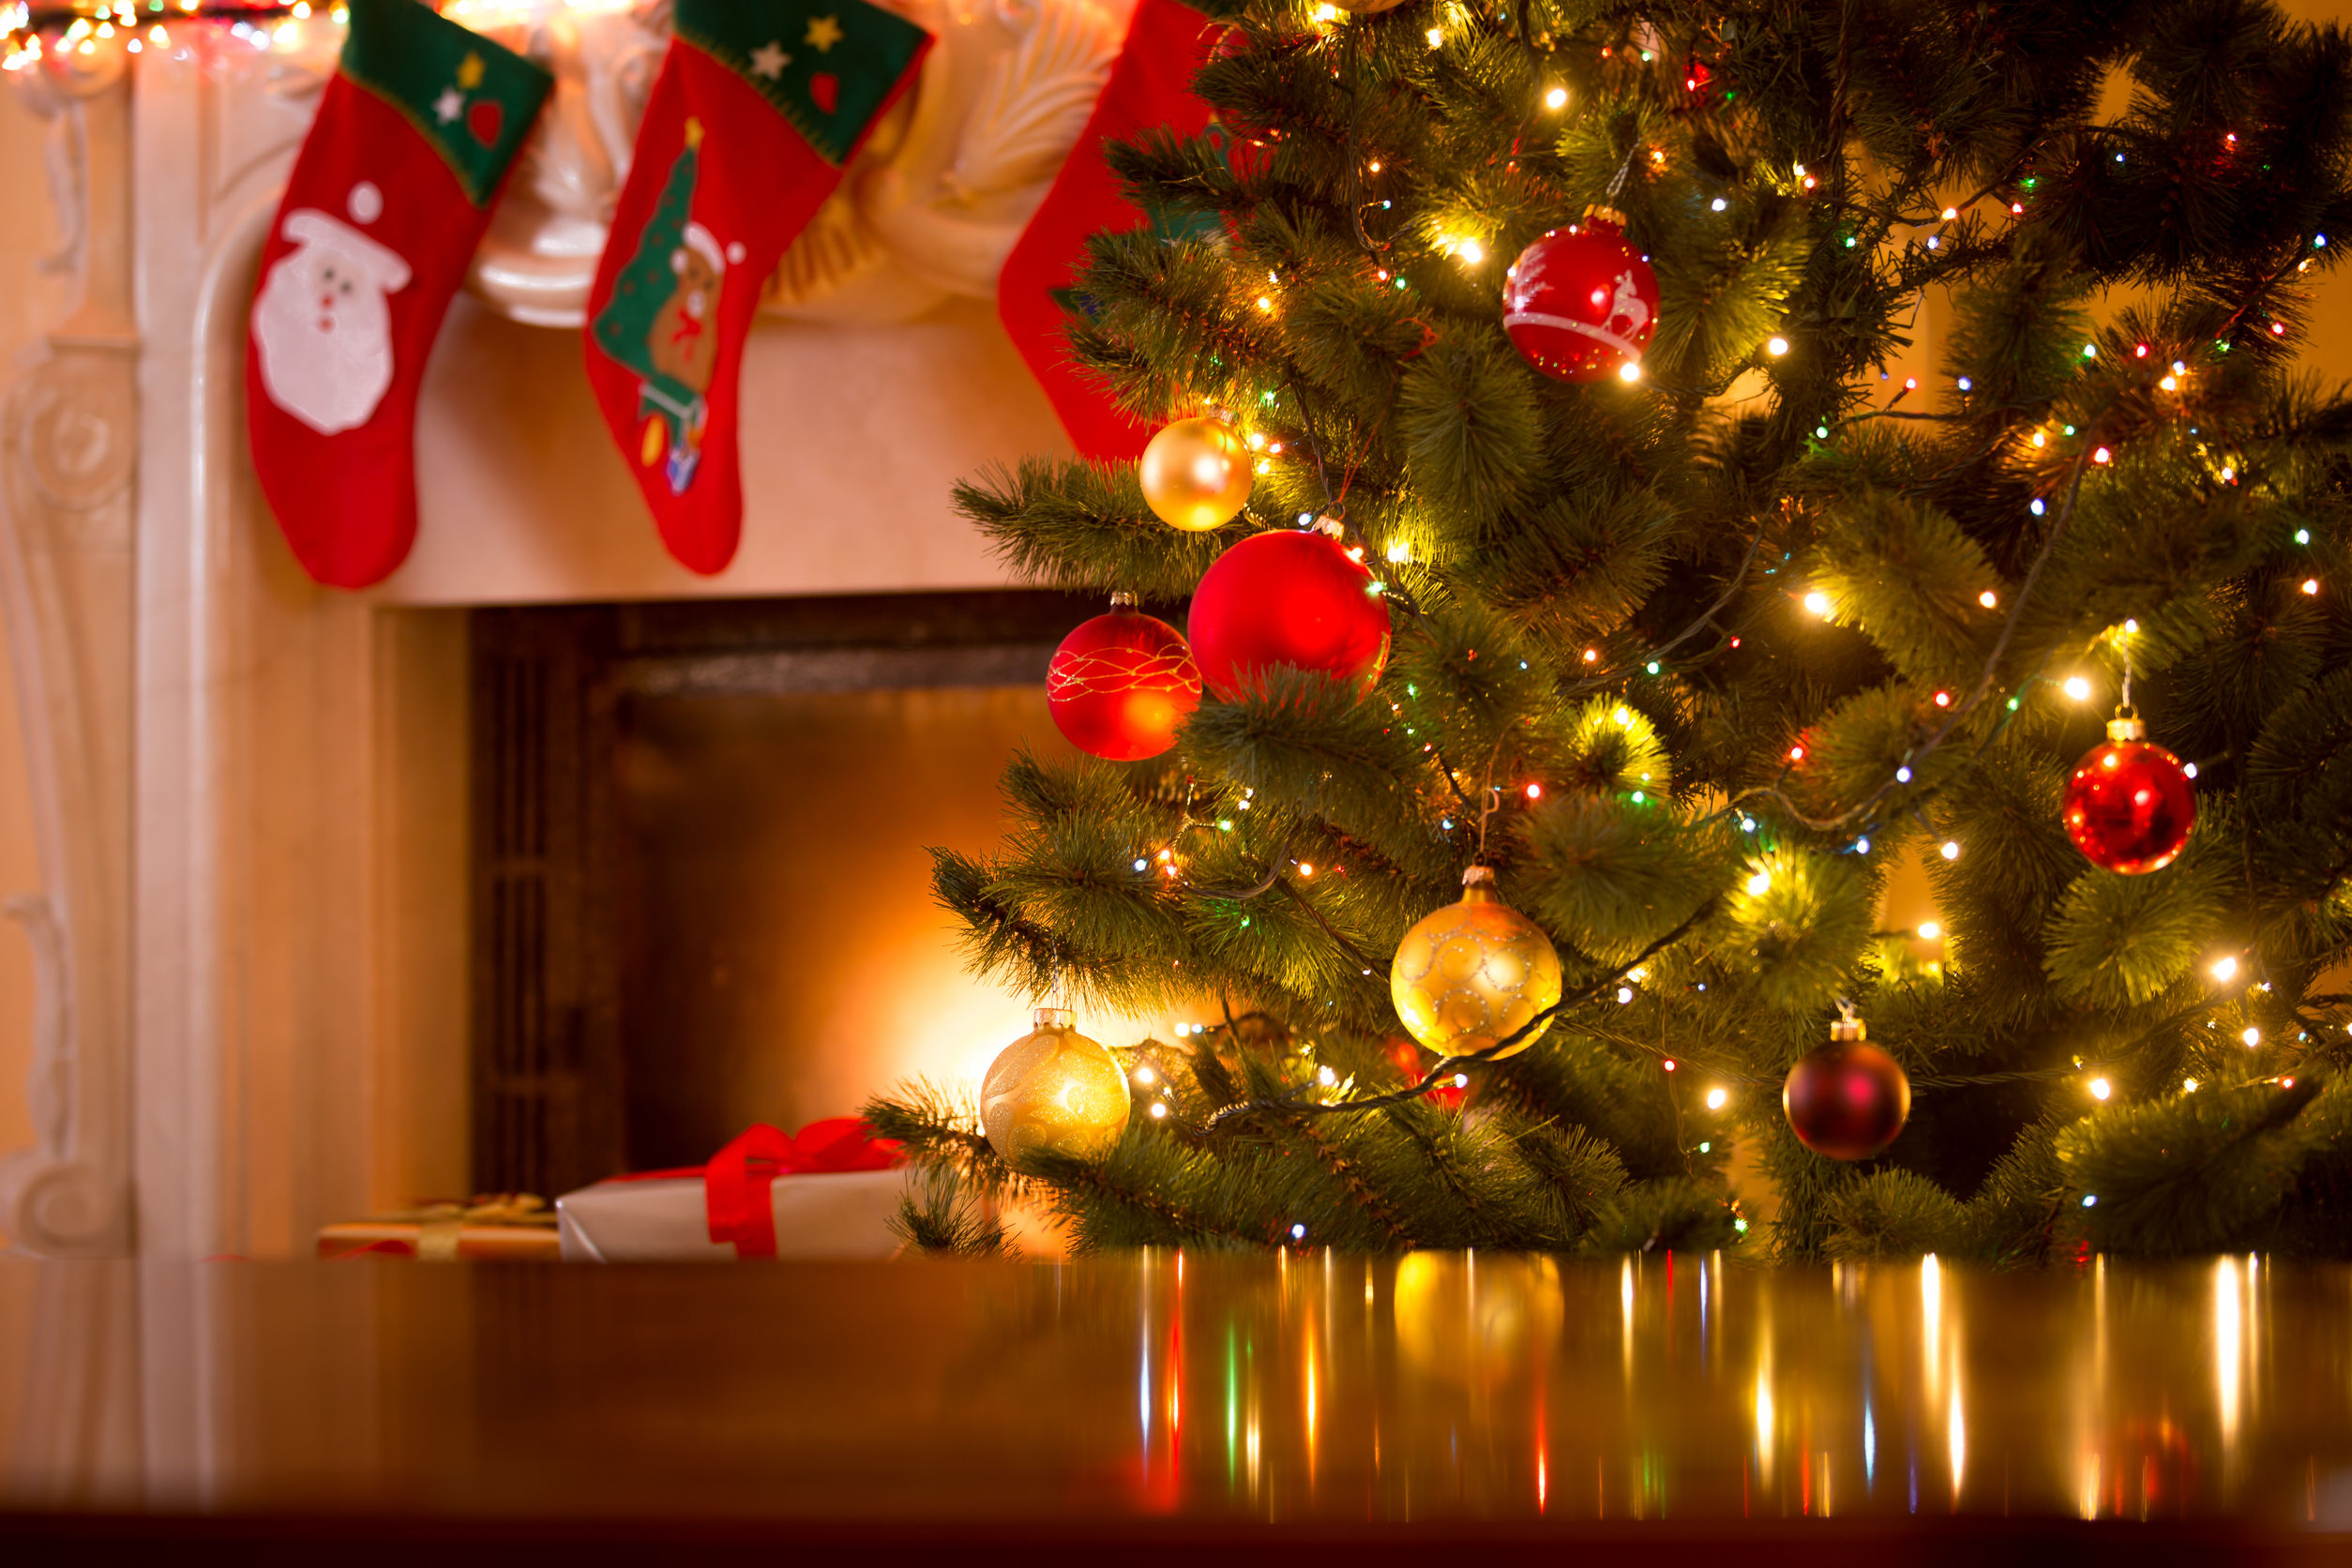 45224312 - christmas holiday background of wooden table against decorated christmas tree and fireplace